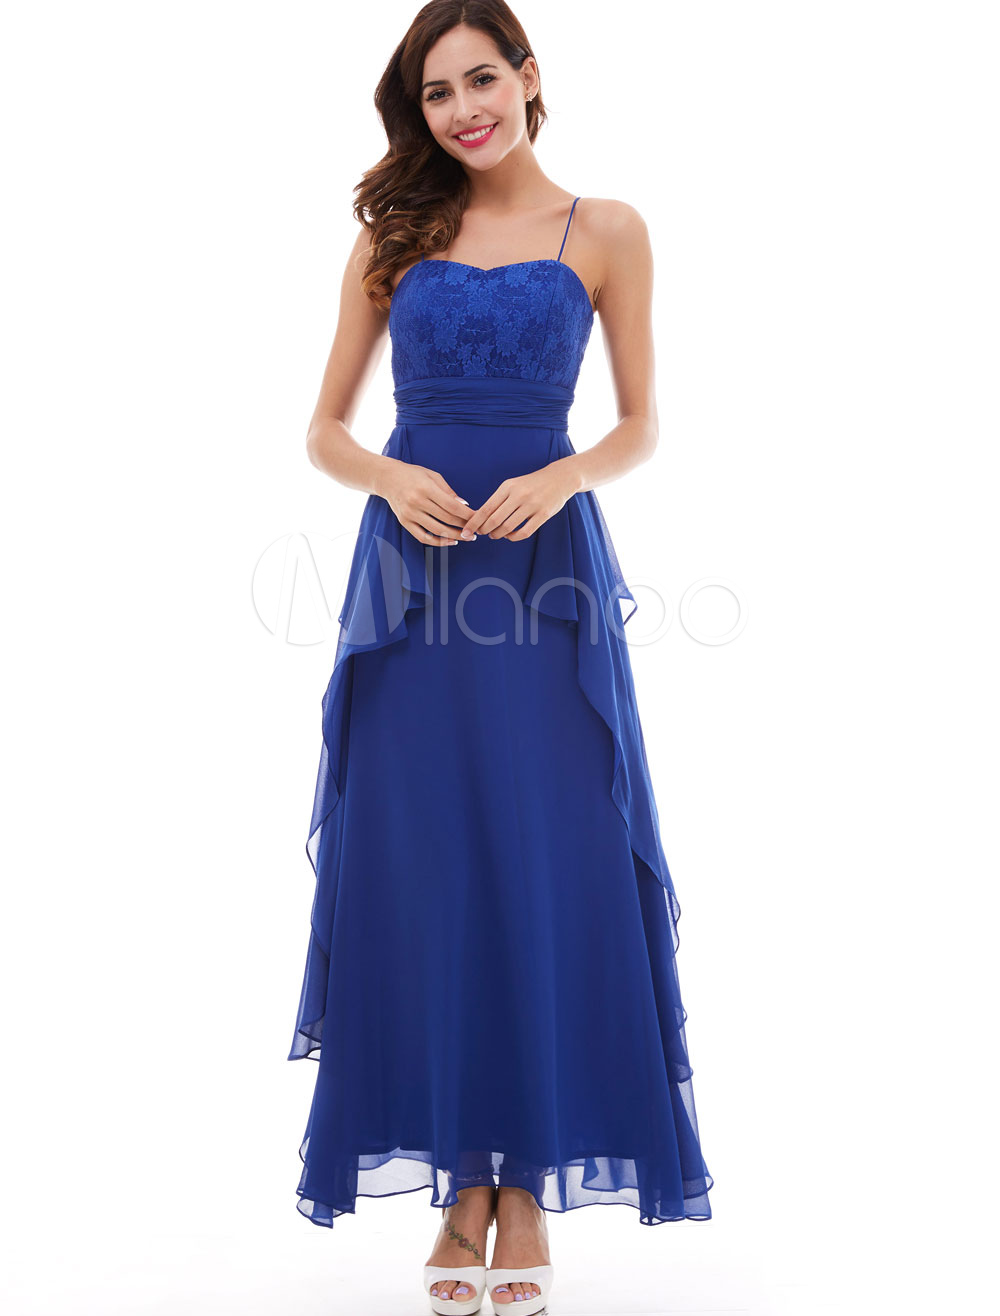 Prom Dresses Long Royal Blue Chiffon Lace Spaghetti Straps Cascading Ruffles Ankle Length Formal Party Dress